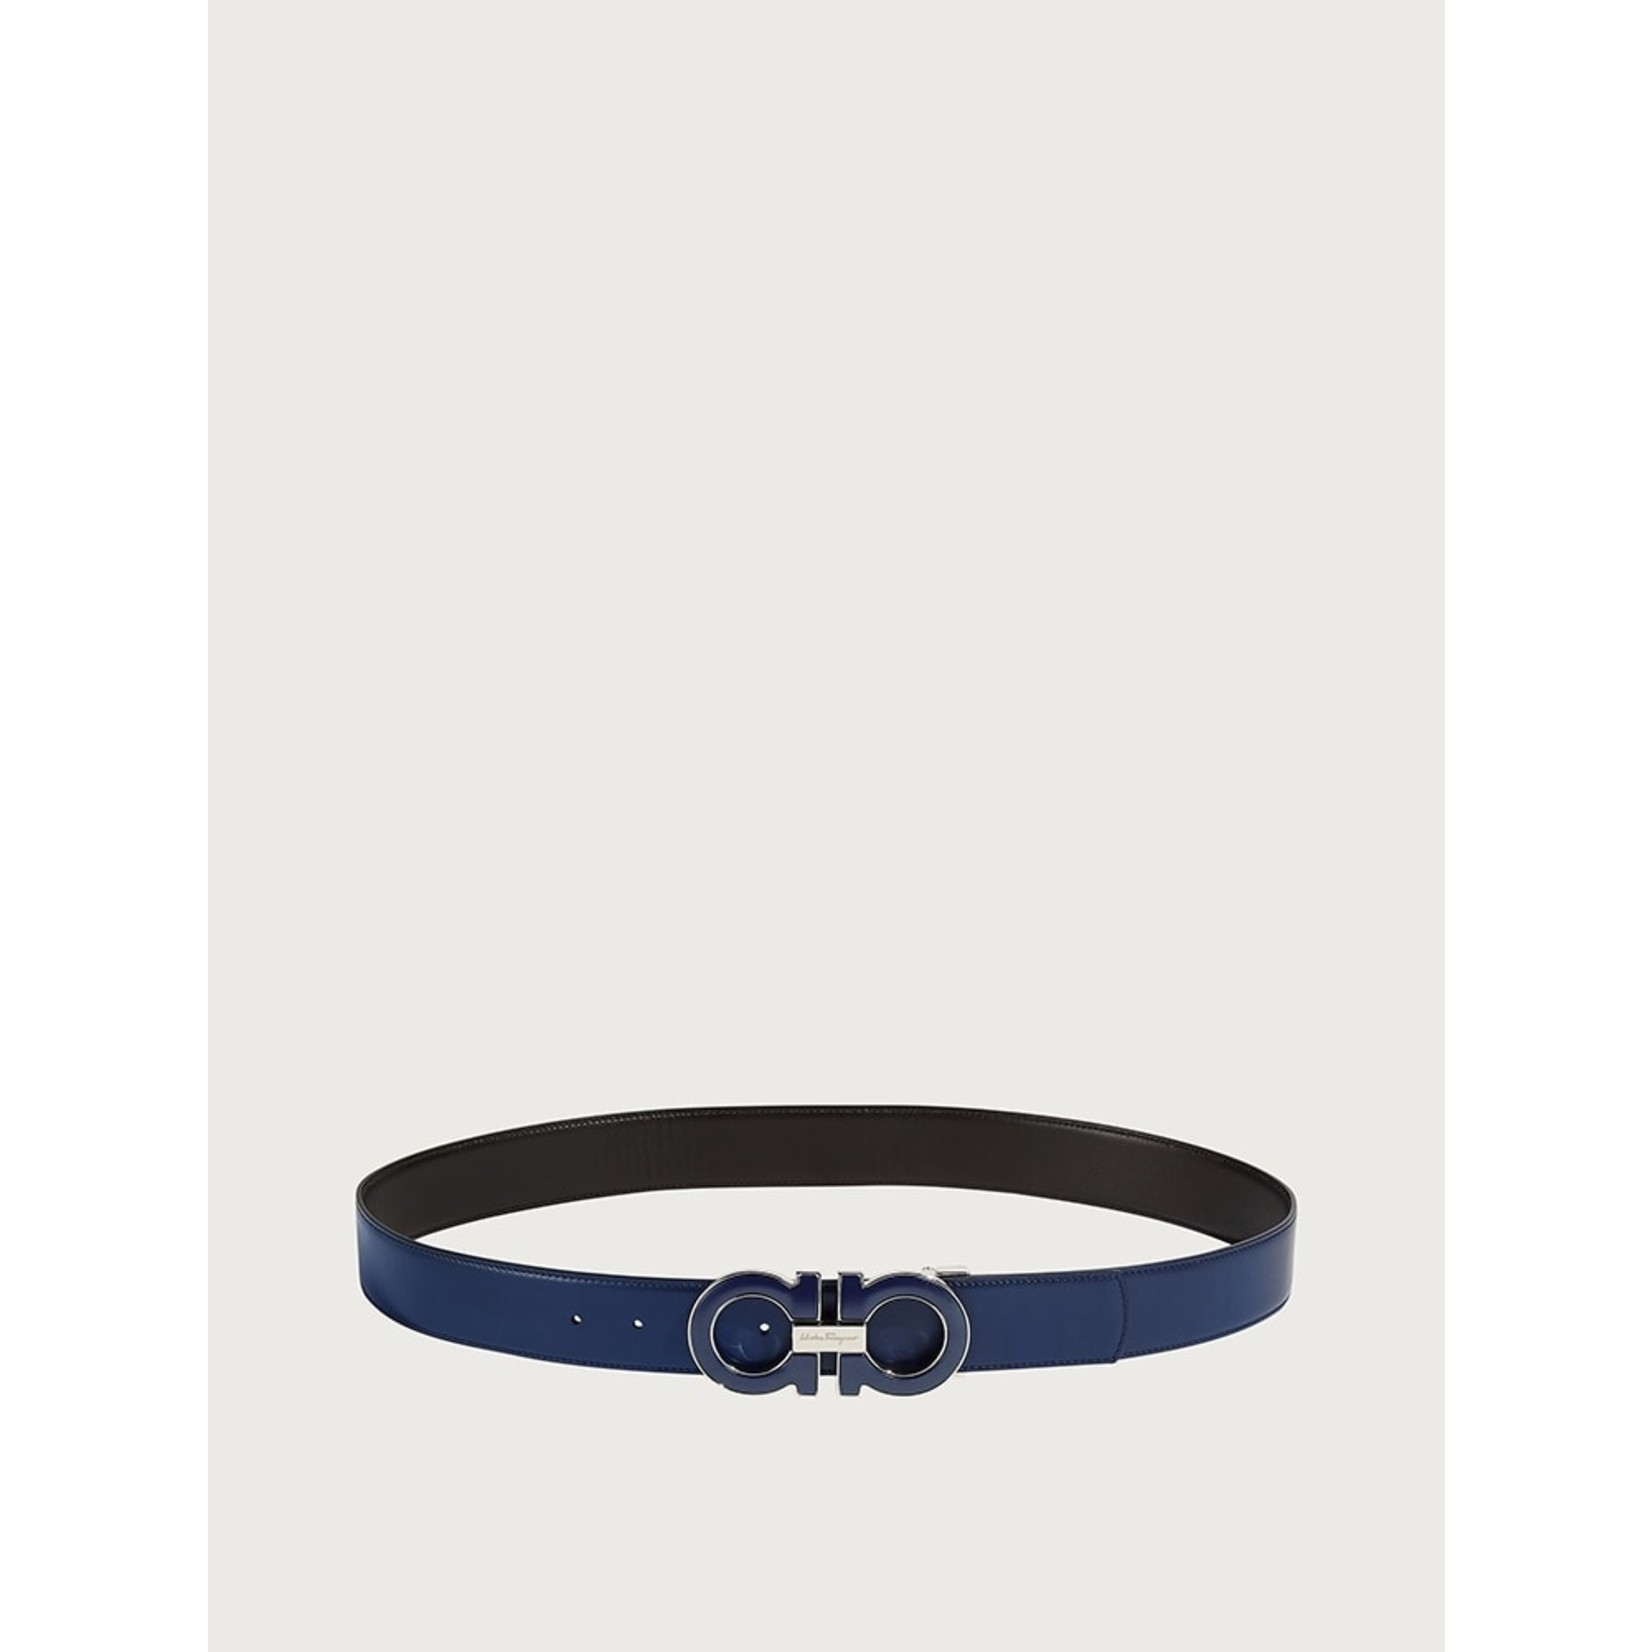 SALVATORE FERRAGAMO SALVATORE FERRAGAMO - REVERSIBLE GANCINI BELT - BLACK/NAVY - 705719